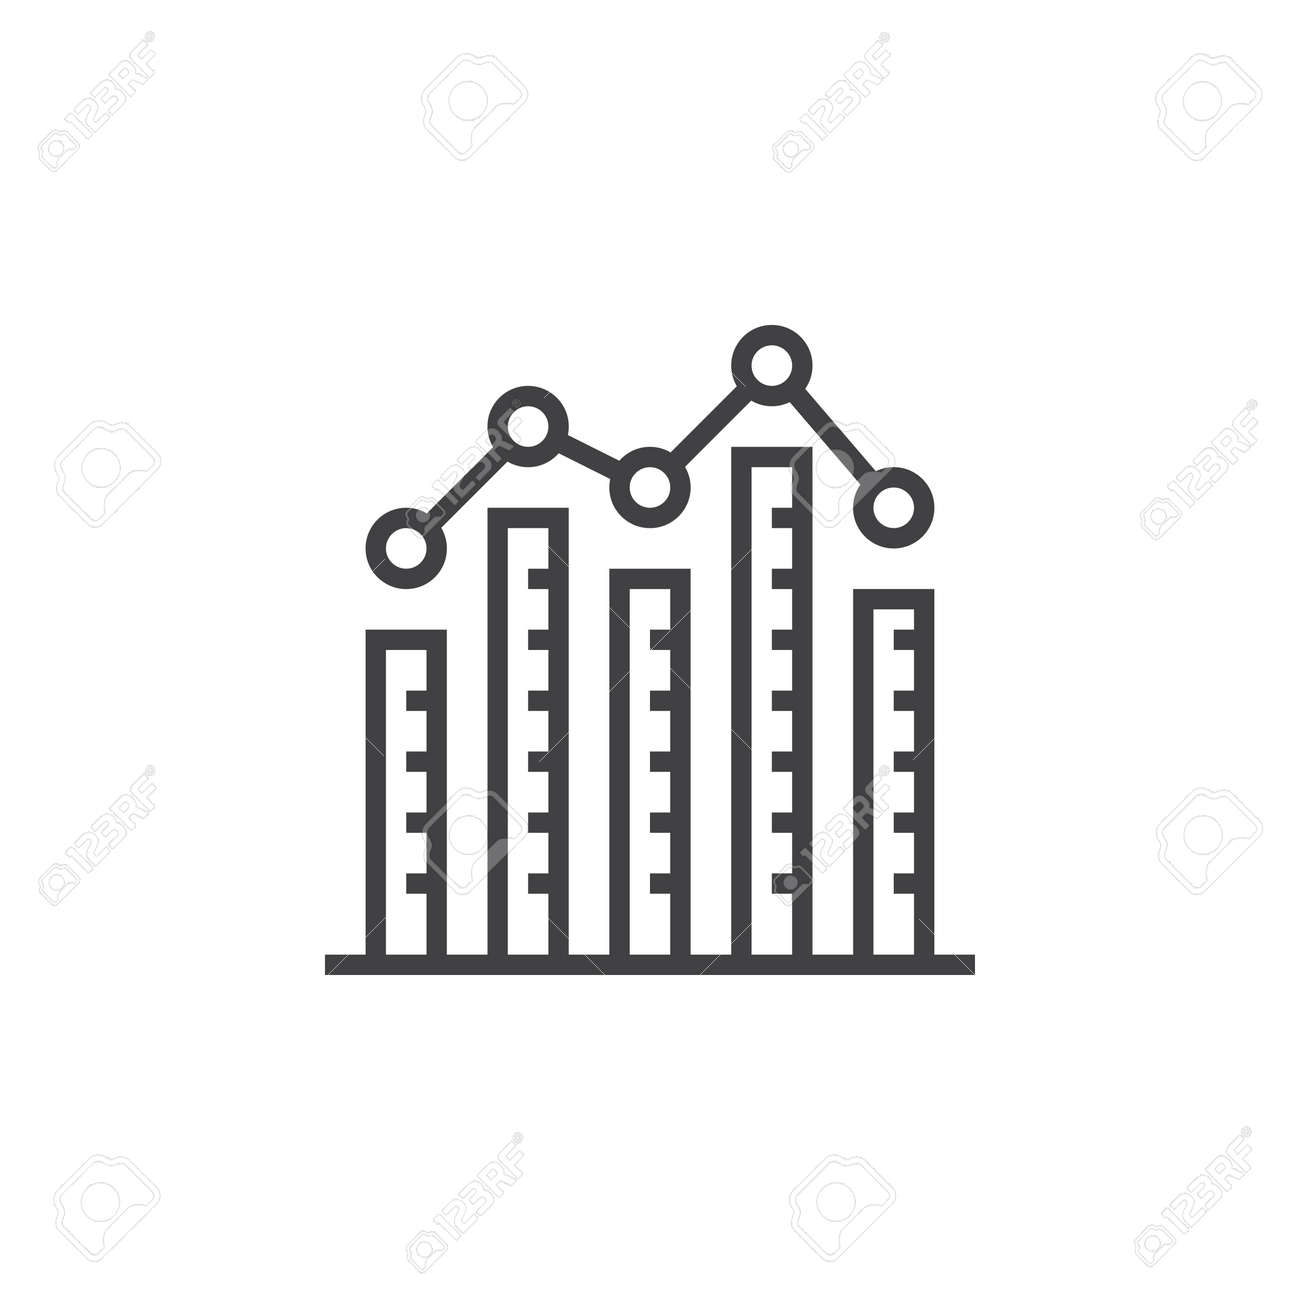 bar graph. column chart line icon, outline vector sign, linear